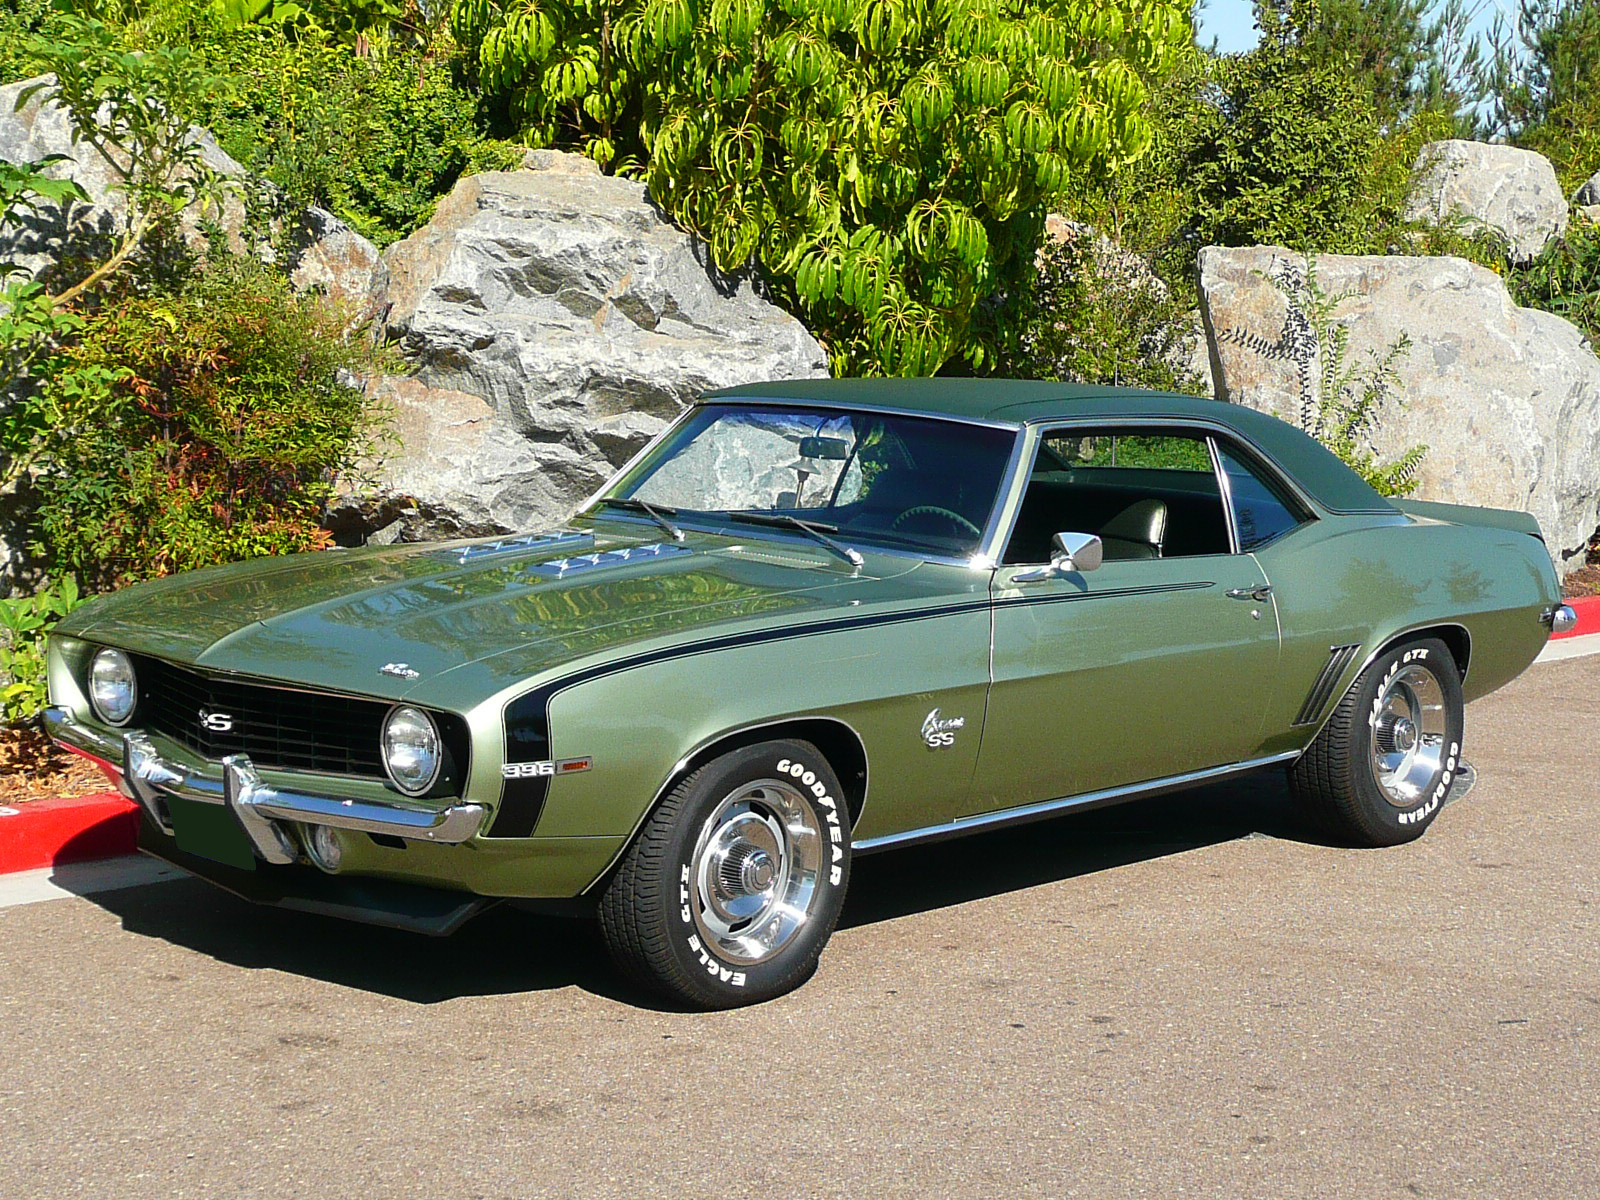 1969 CHEVROLET CAMARO SS COUPE - Front 3/4 - 80979